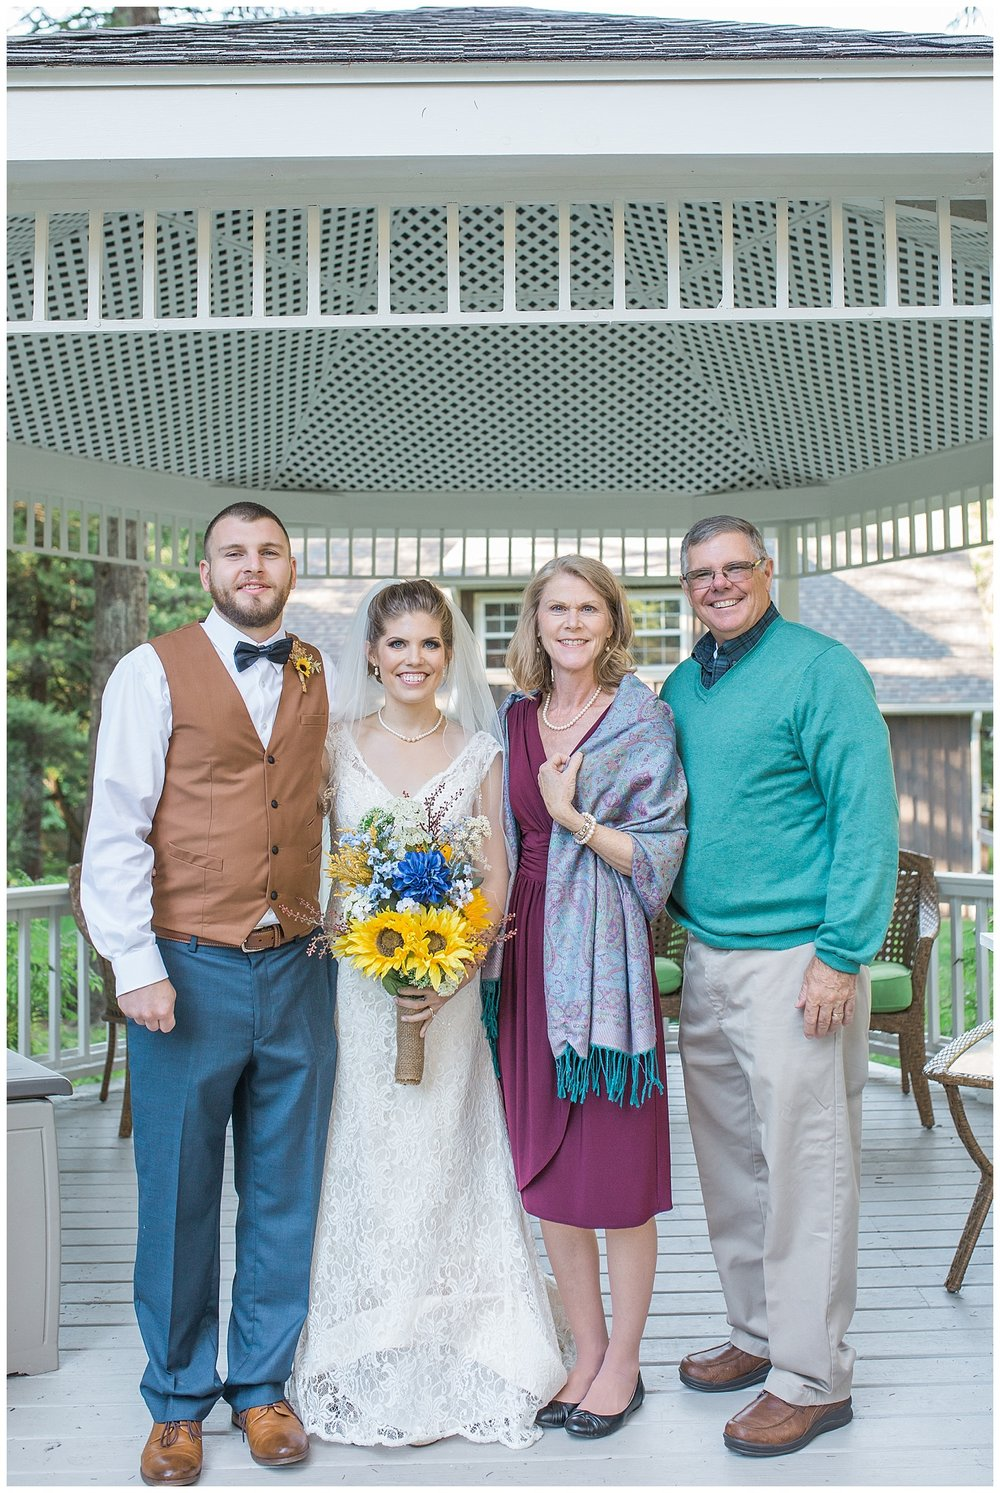 Harding - #ezinlove Caledonia NY Camp Wedding 144.jpg